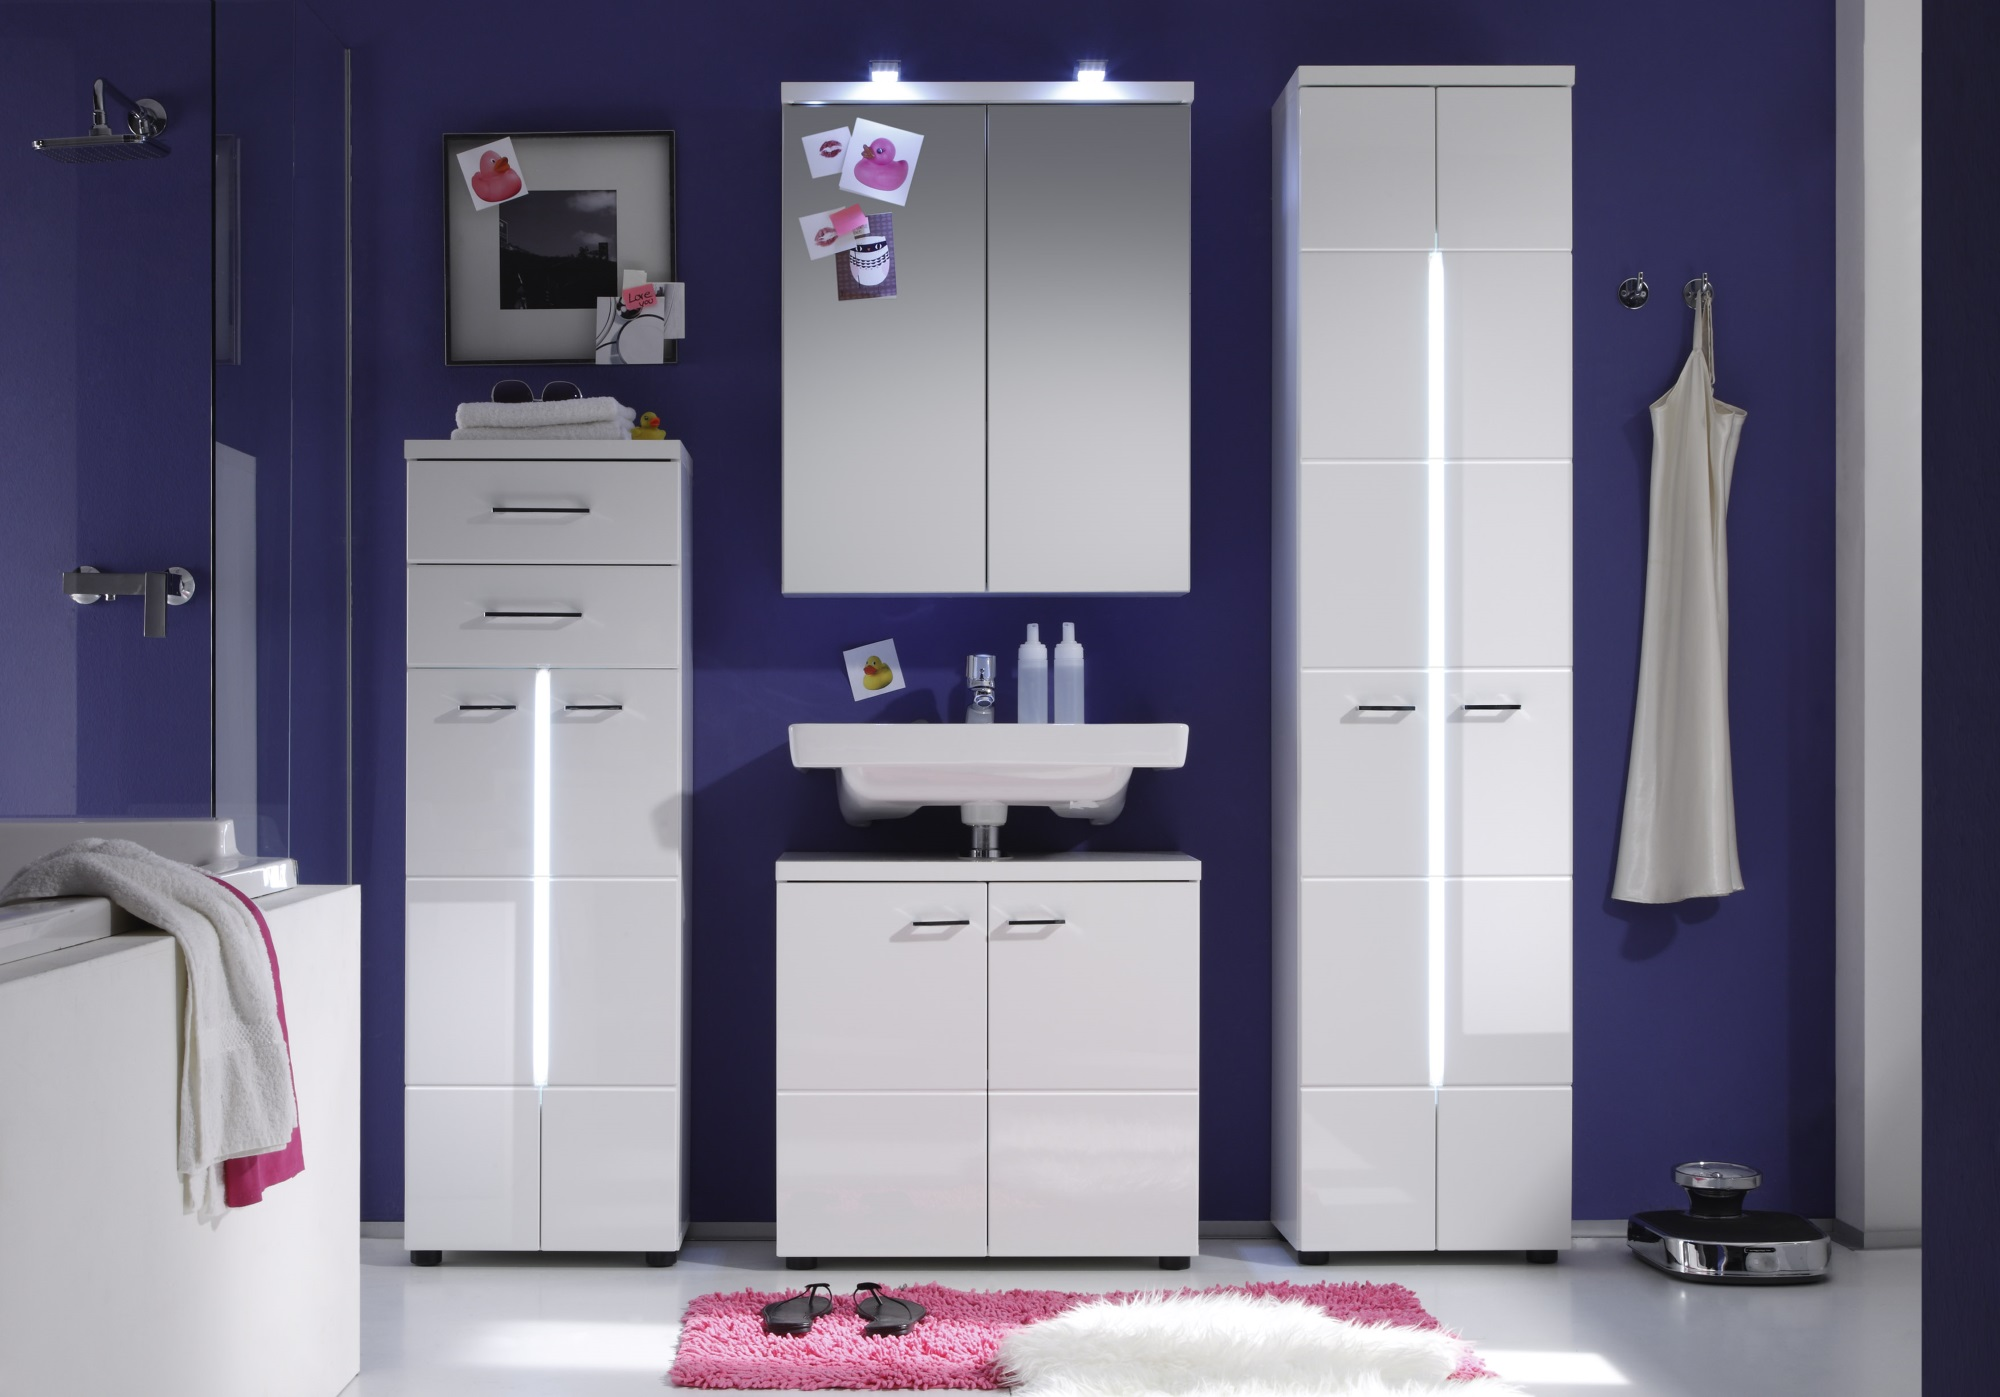 armoire de toilette de salle de bain design avec clairage blondie matelpro. Black Bedroom Furniture Sets. Home Design Ideas